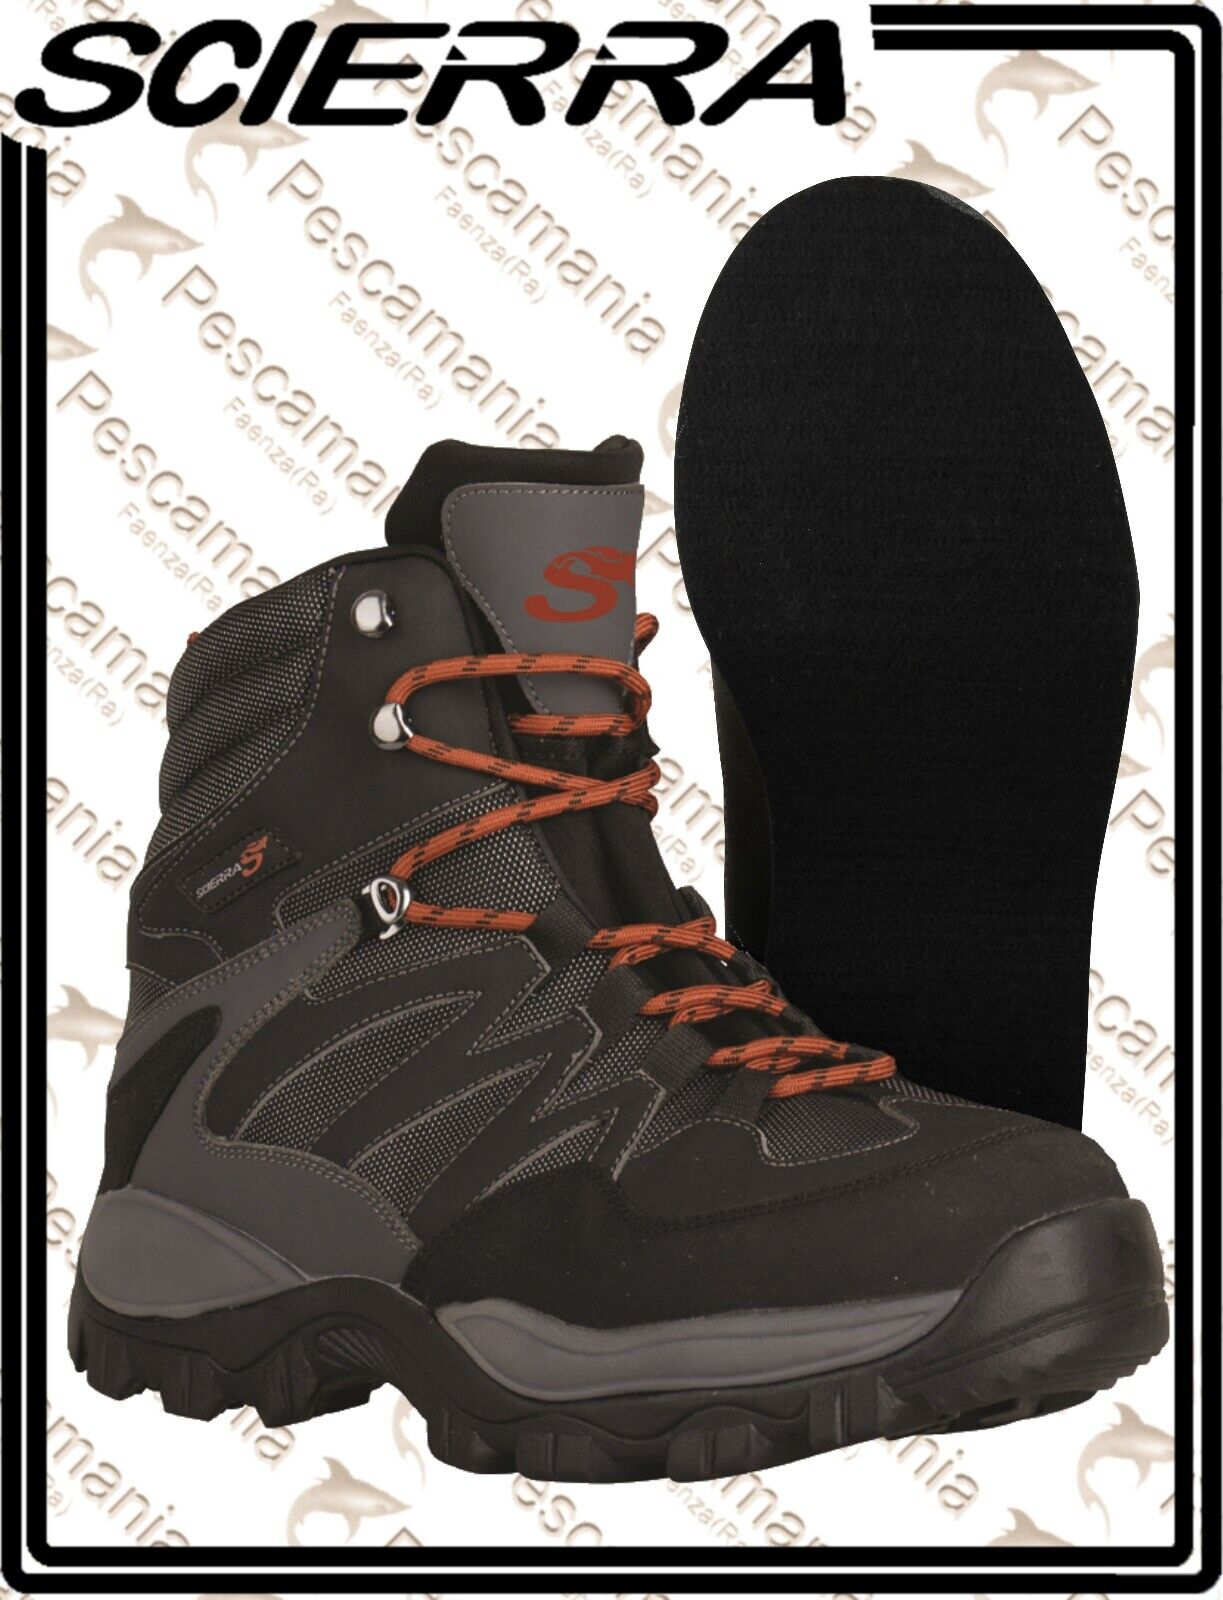 Boot by Wader Scierra X-Force Wading shoes W  Felt Sunglasses